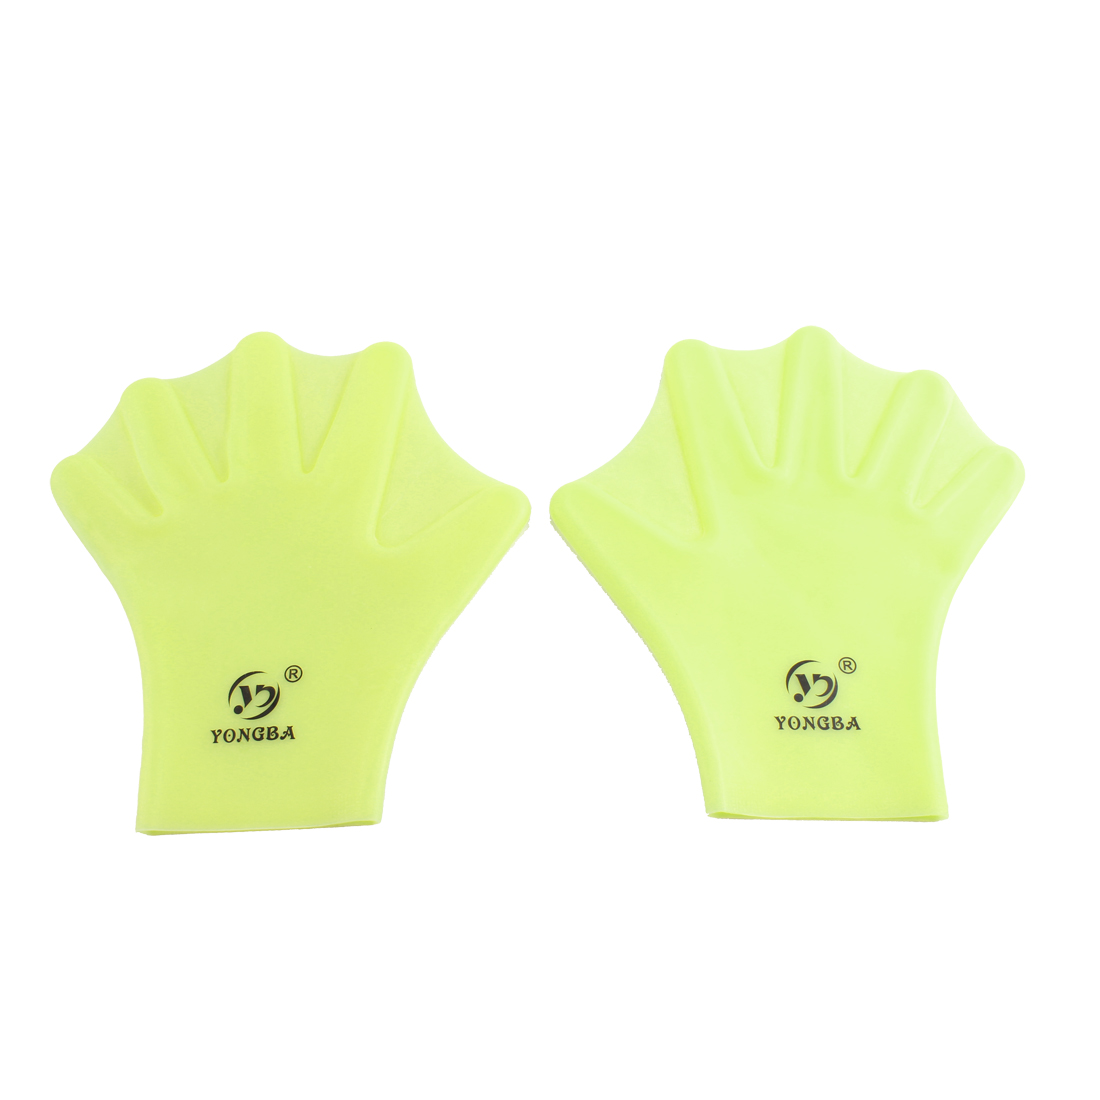 Silicone Swim Training Aid Swimming Hand Webbed Paddles Gloves Lemon Yellow Pair